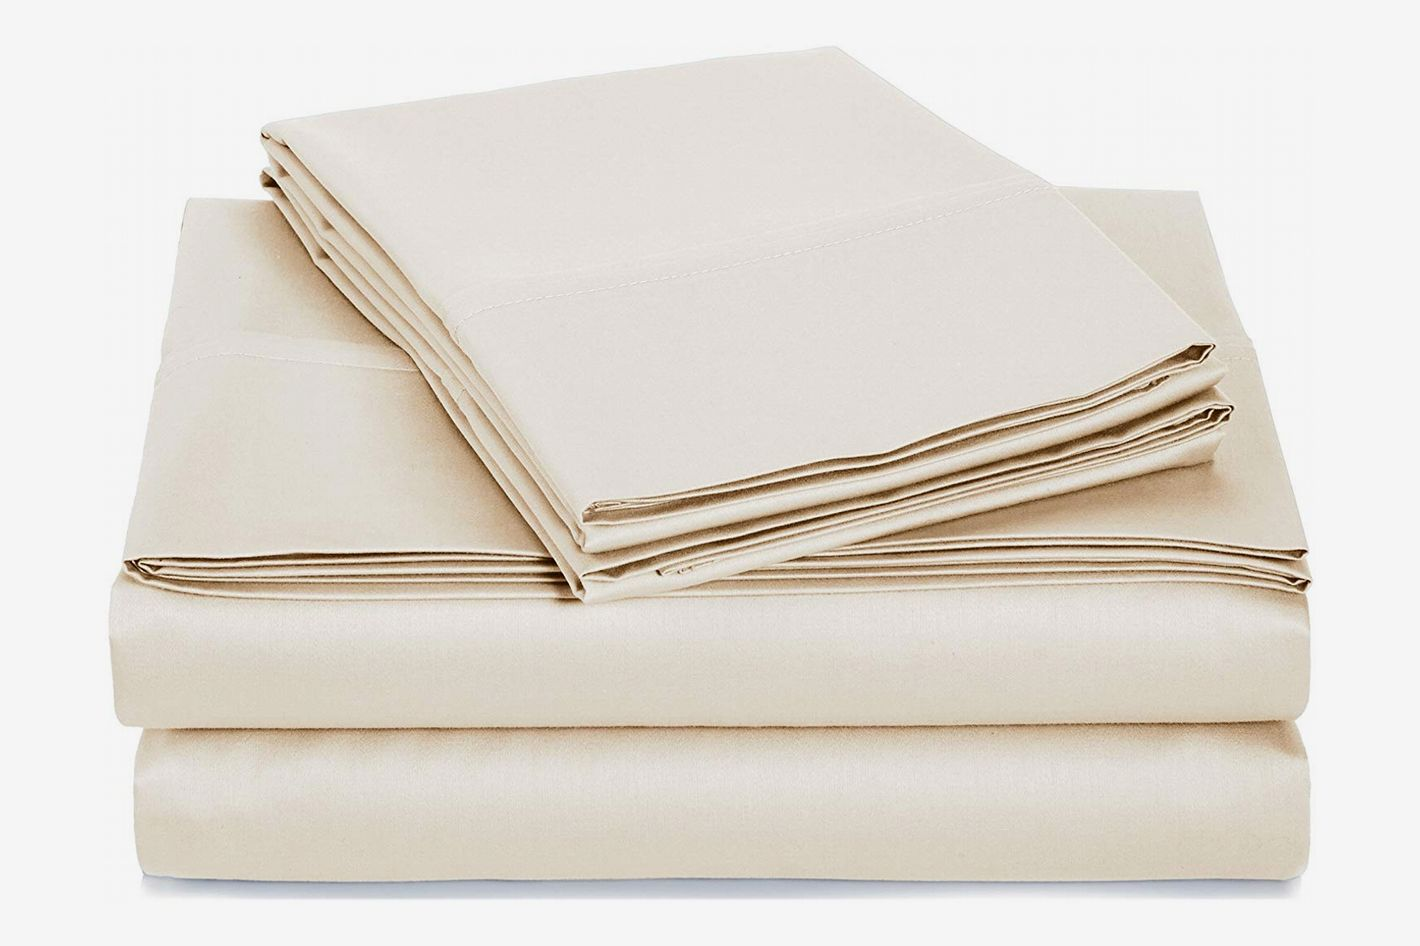 AmazonBasics 400 Thread Count Sheet Set, 100% Cotton, Sateen Finish – Full, Beige